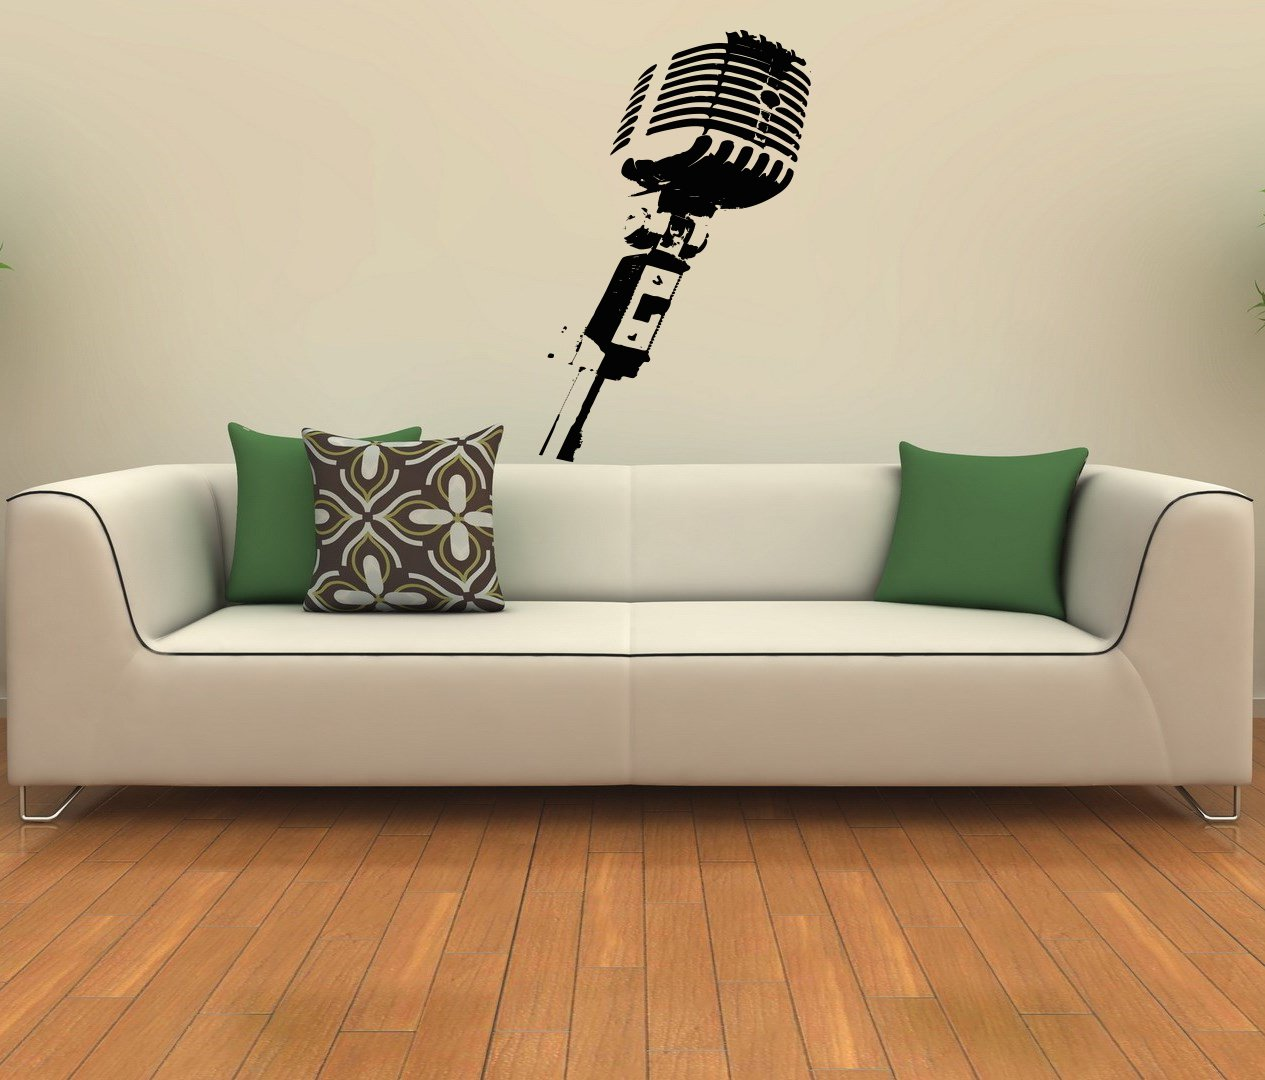 Studio Microphone Musical Decor Recording Music Studio Wall Vinyl Decal Art  Sticker Home Modern Stylish Interior Decor For Any Room Smooth And Flat  Surfaces ...